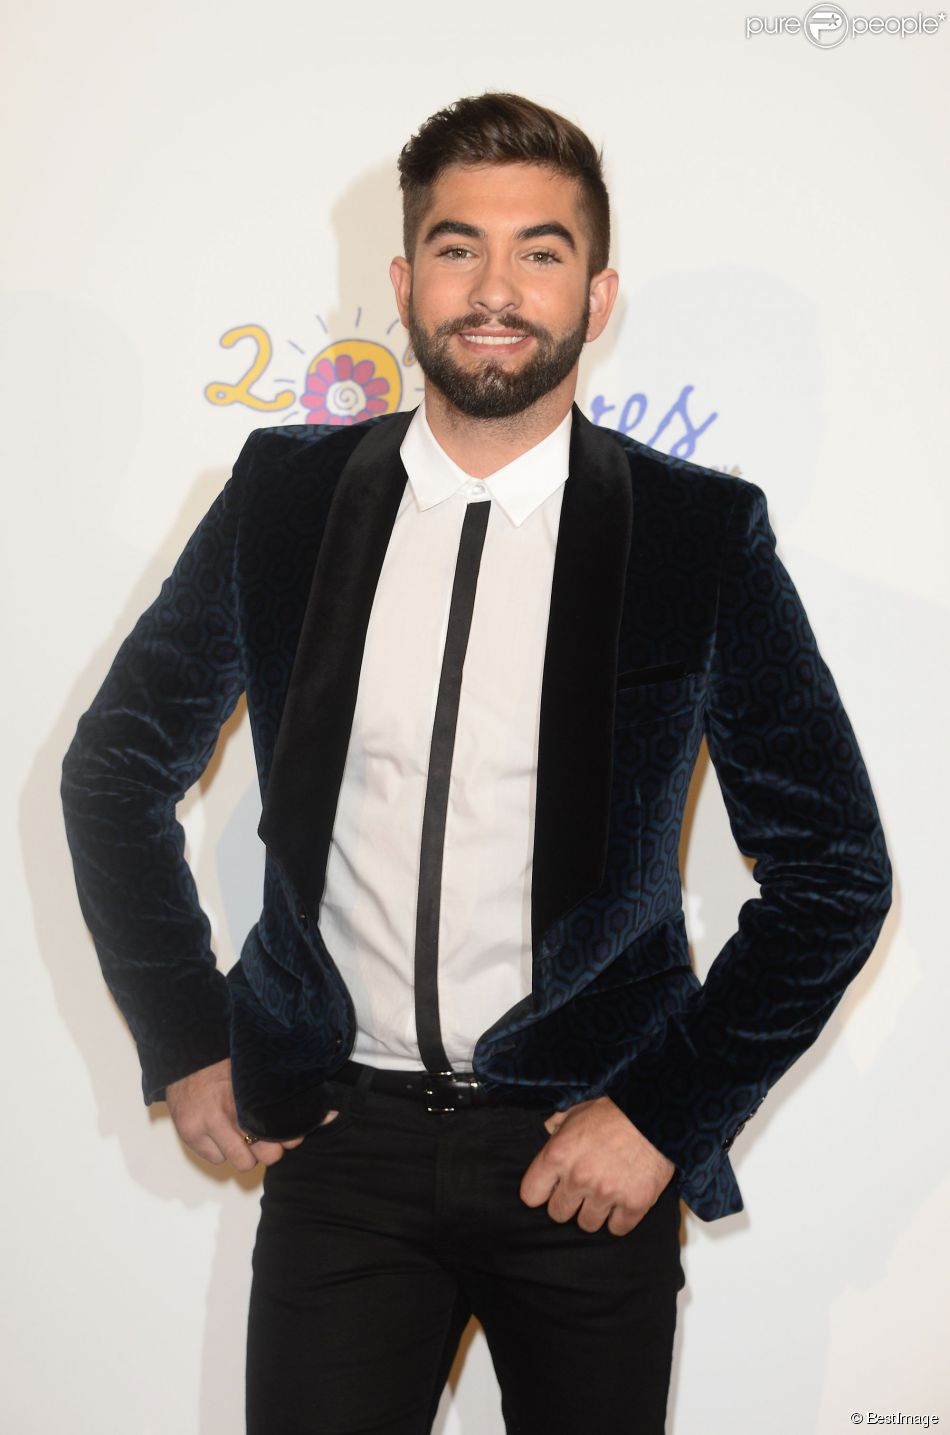 Kendji Girac participe au concert We Love Disney Live au profit de l'association Rêves au Grand Rex à Paris le 3 novembre 2014.